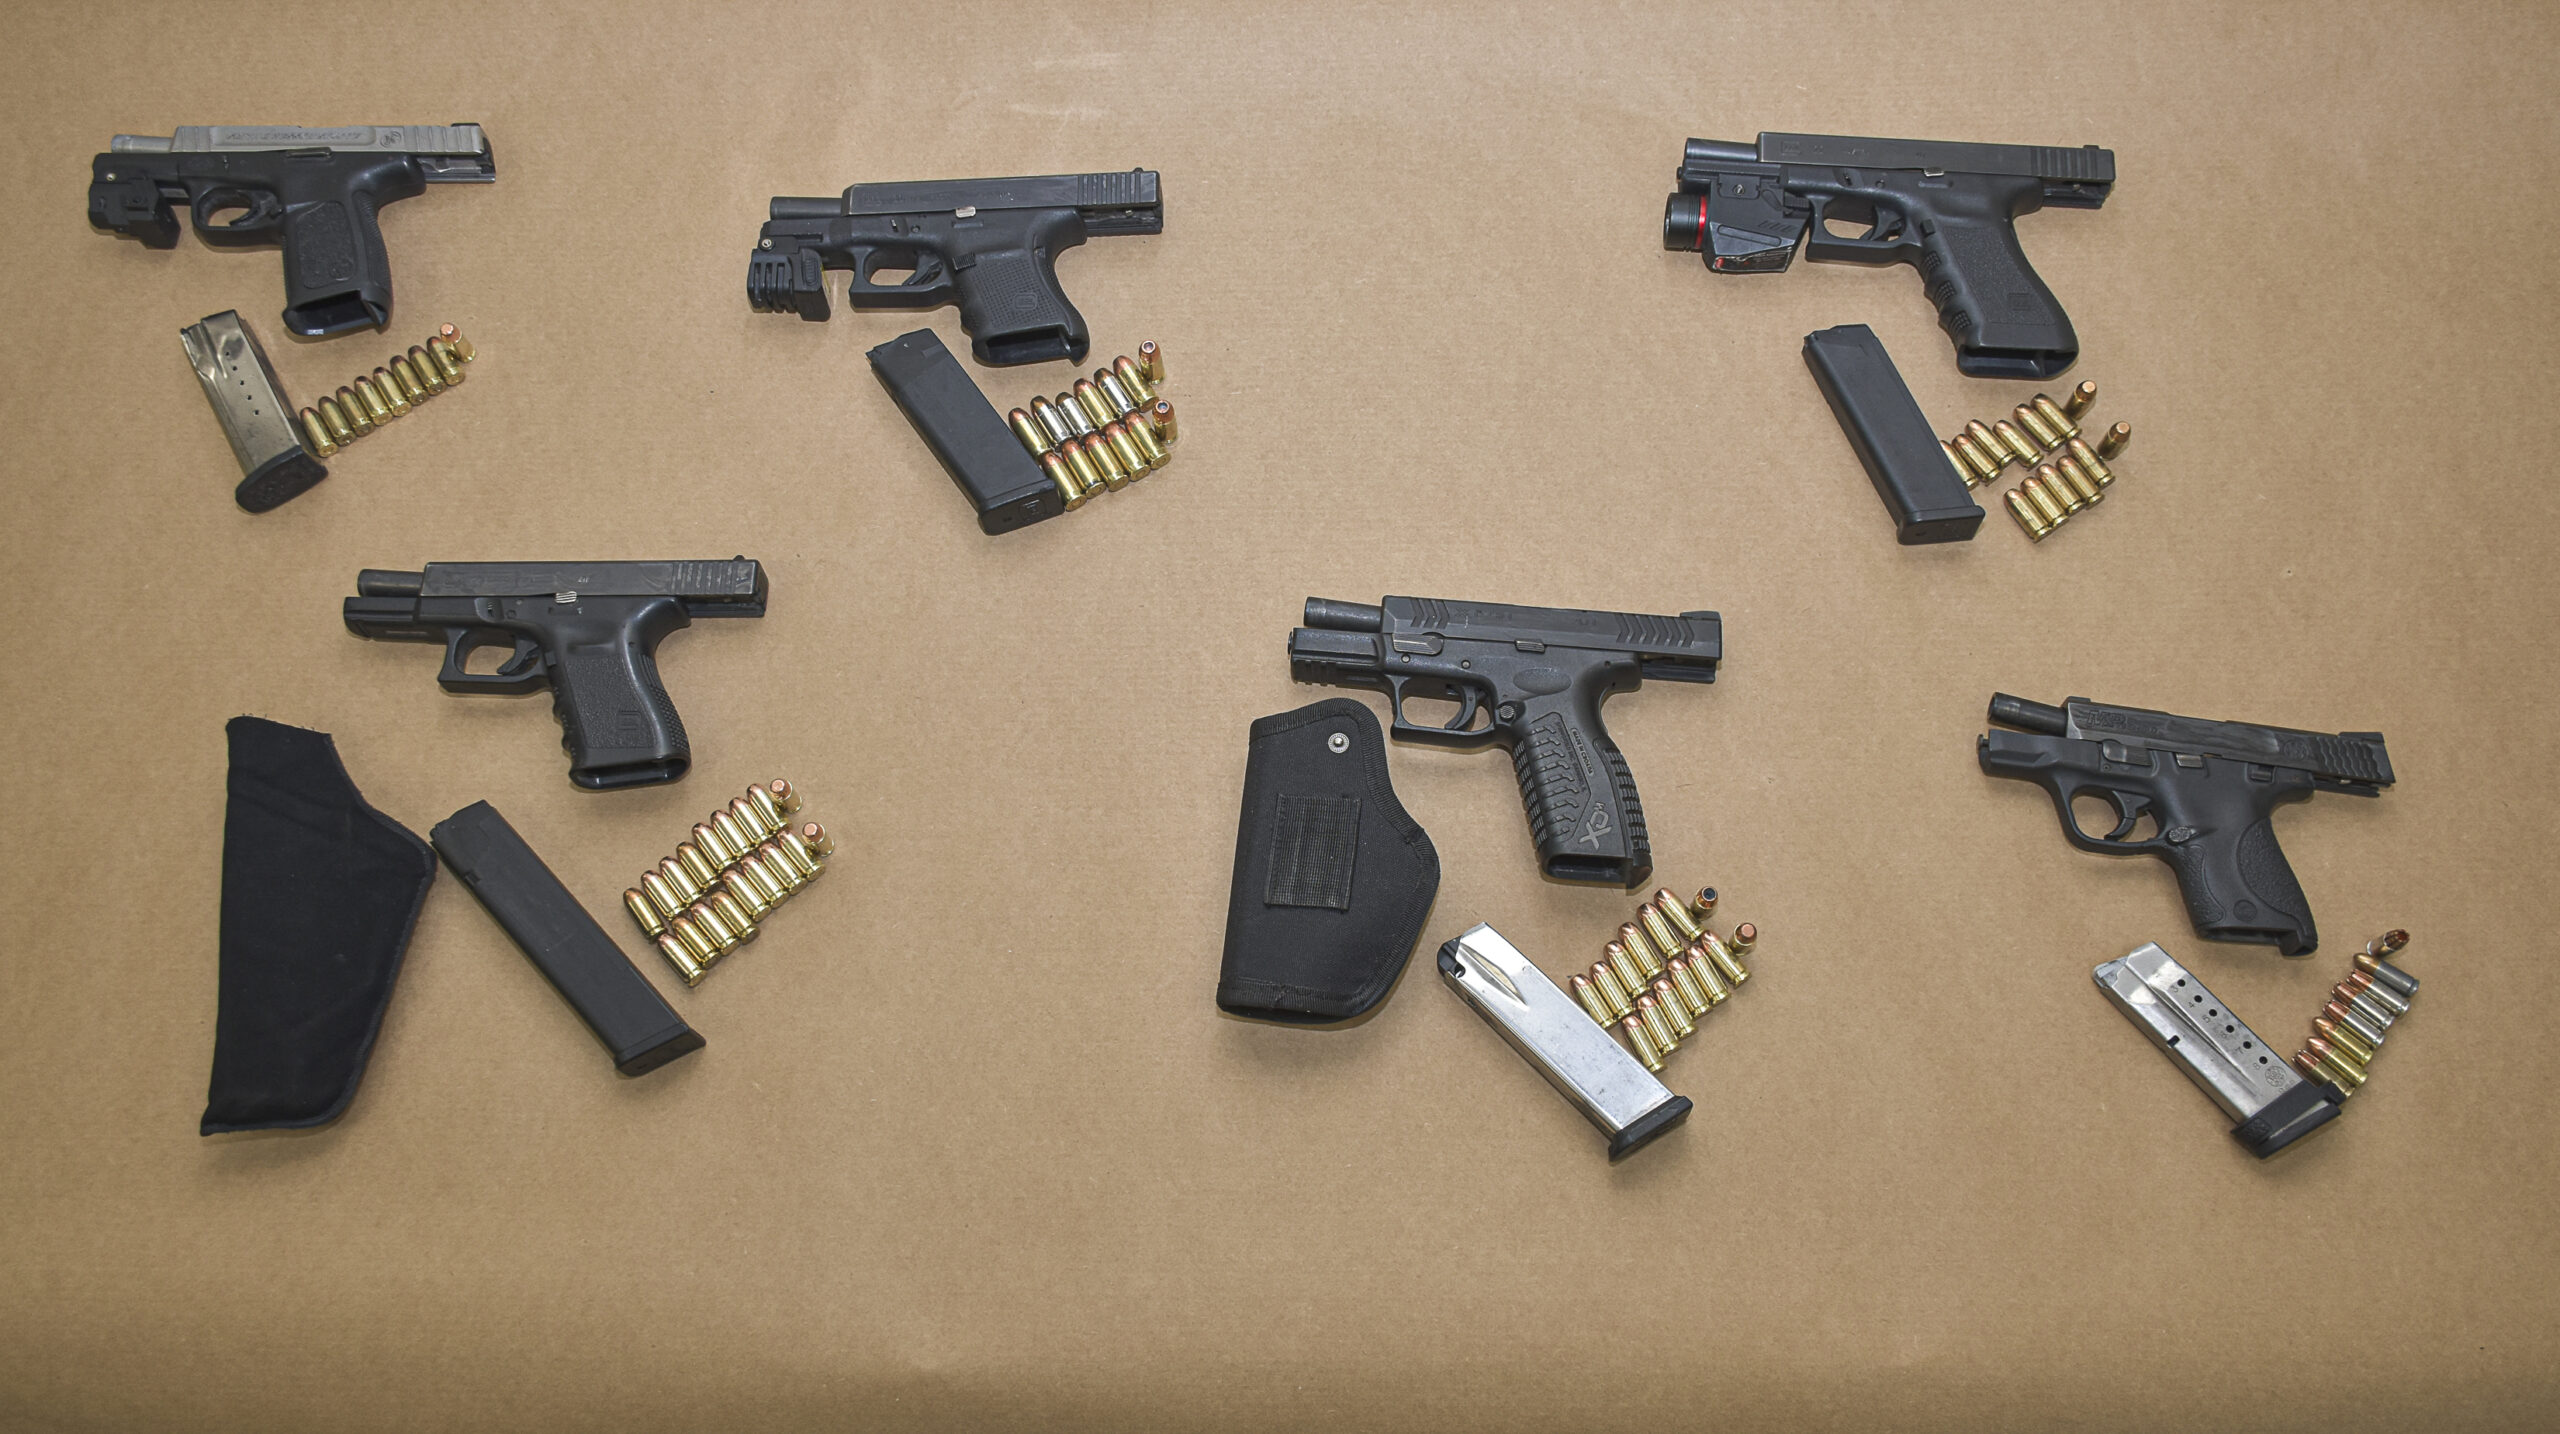 Multiple handguns and ammunition laid out of a brown surface.